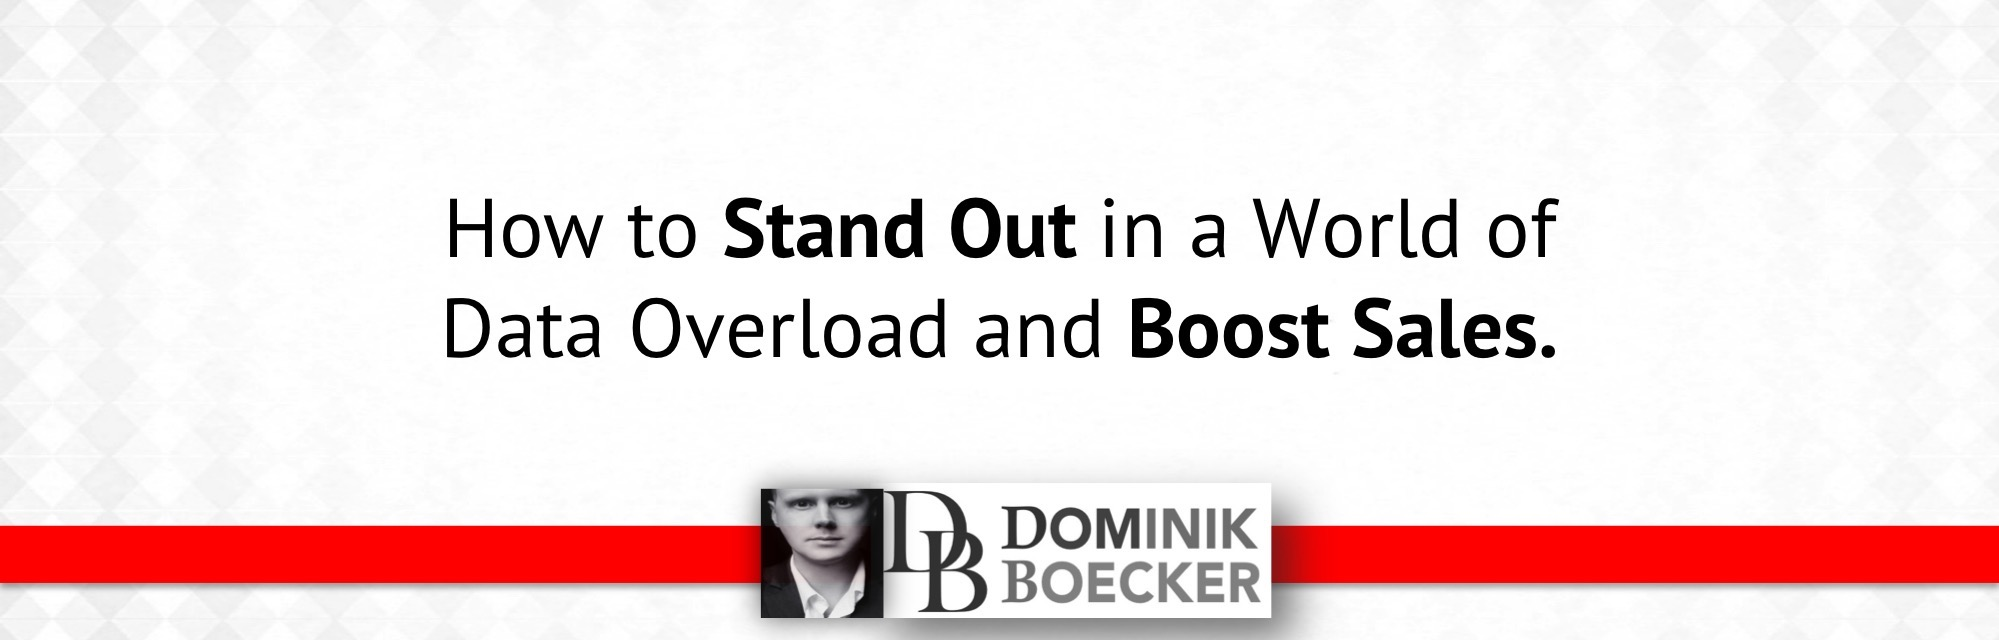 How to Stand Out in a World of Data Overload and Boost Sales.